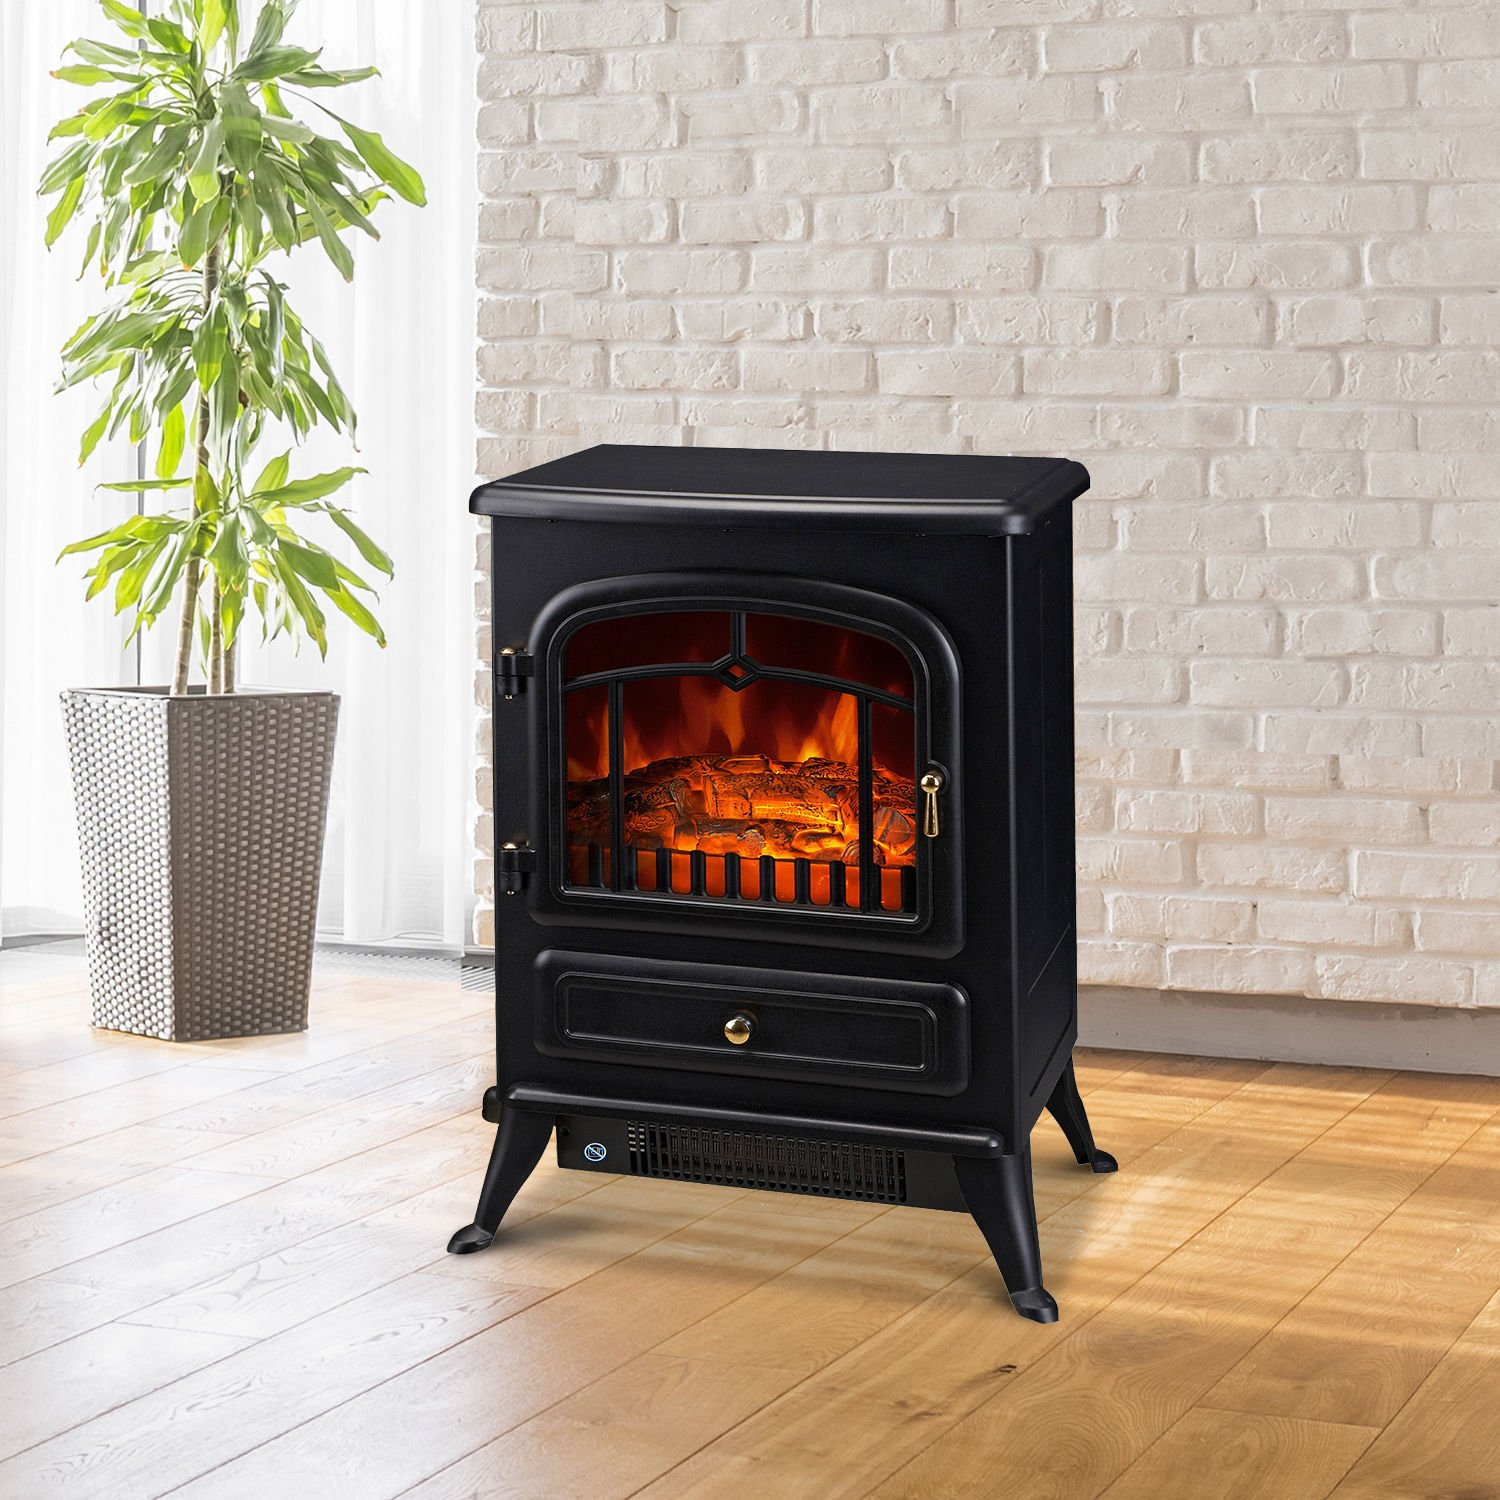 Homcom Freestanding Electric Fire Place Indoor Heater Glass View Log